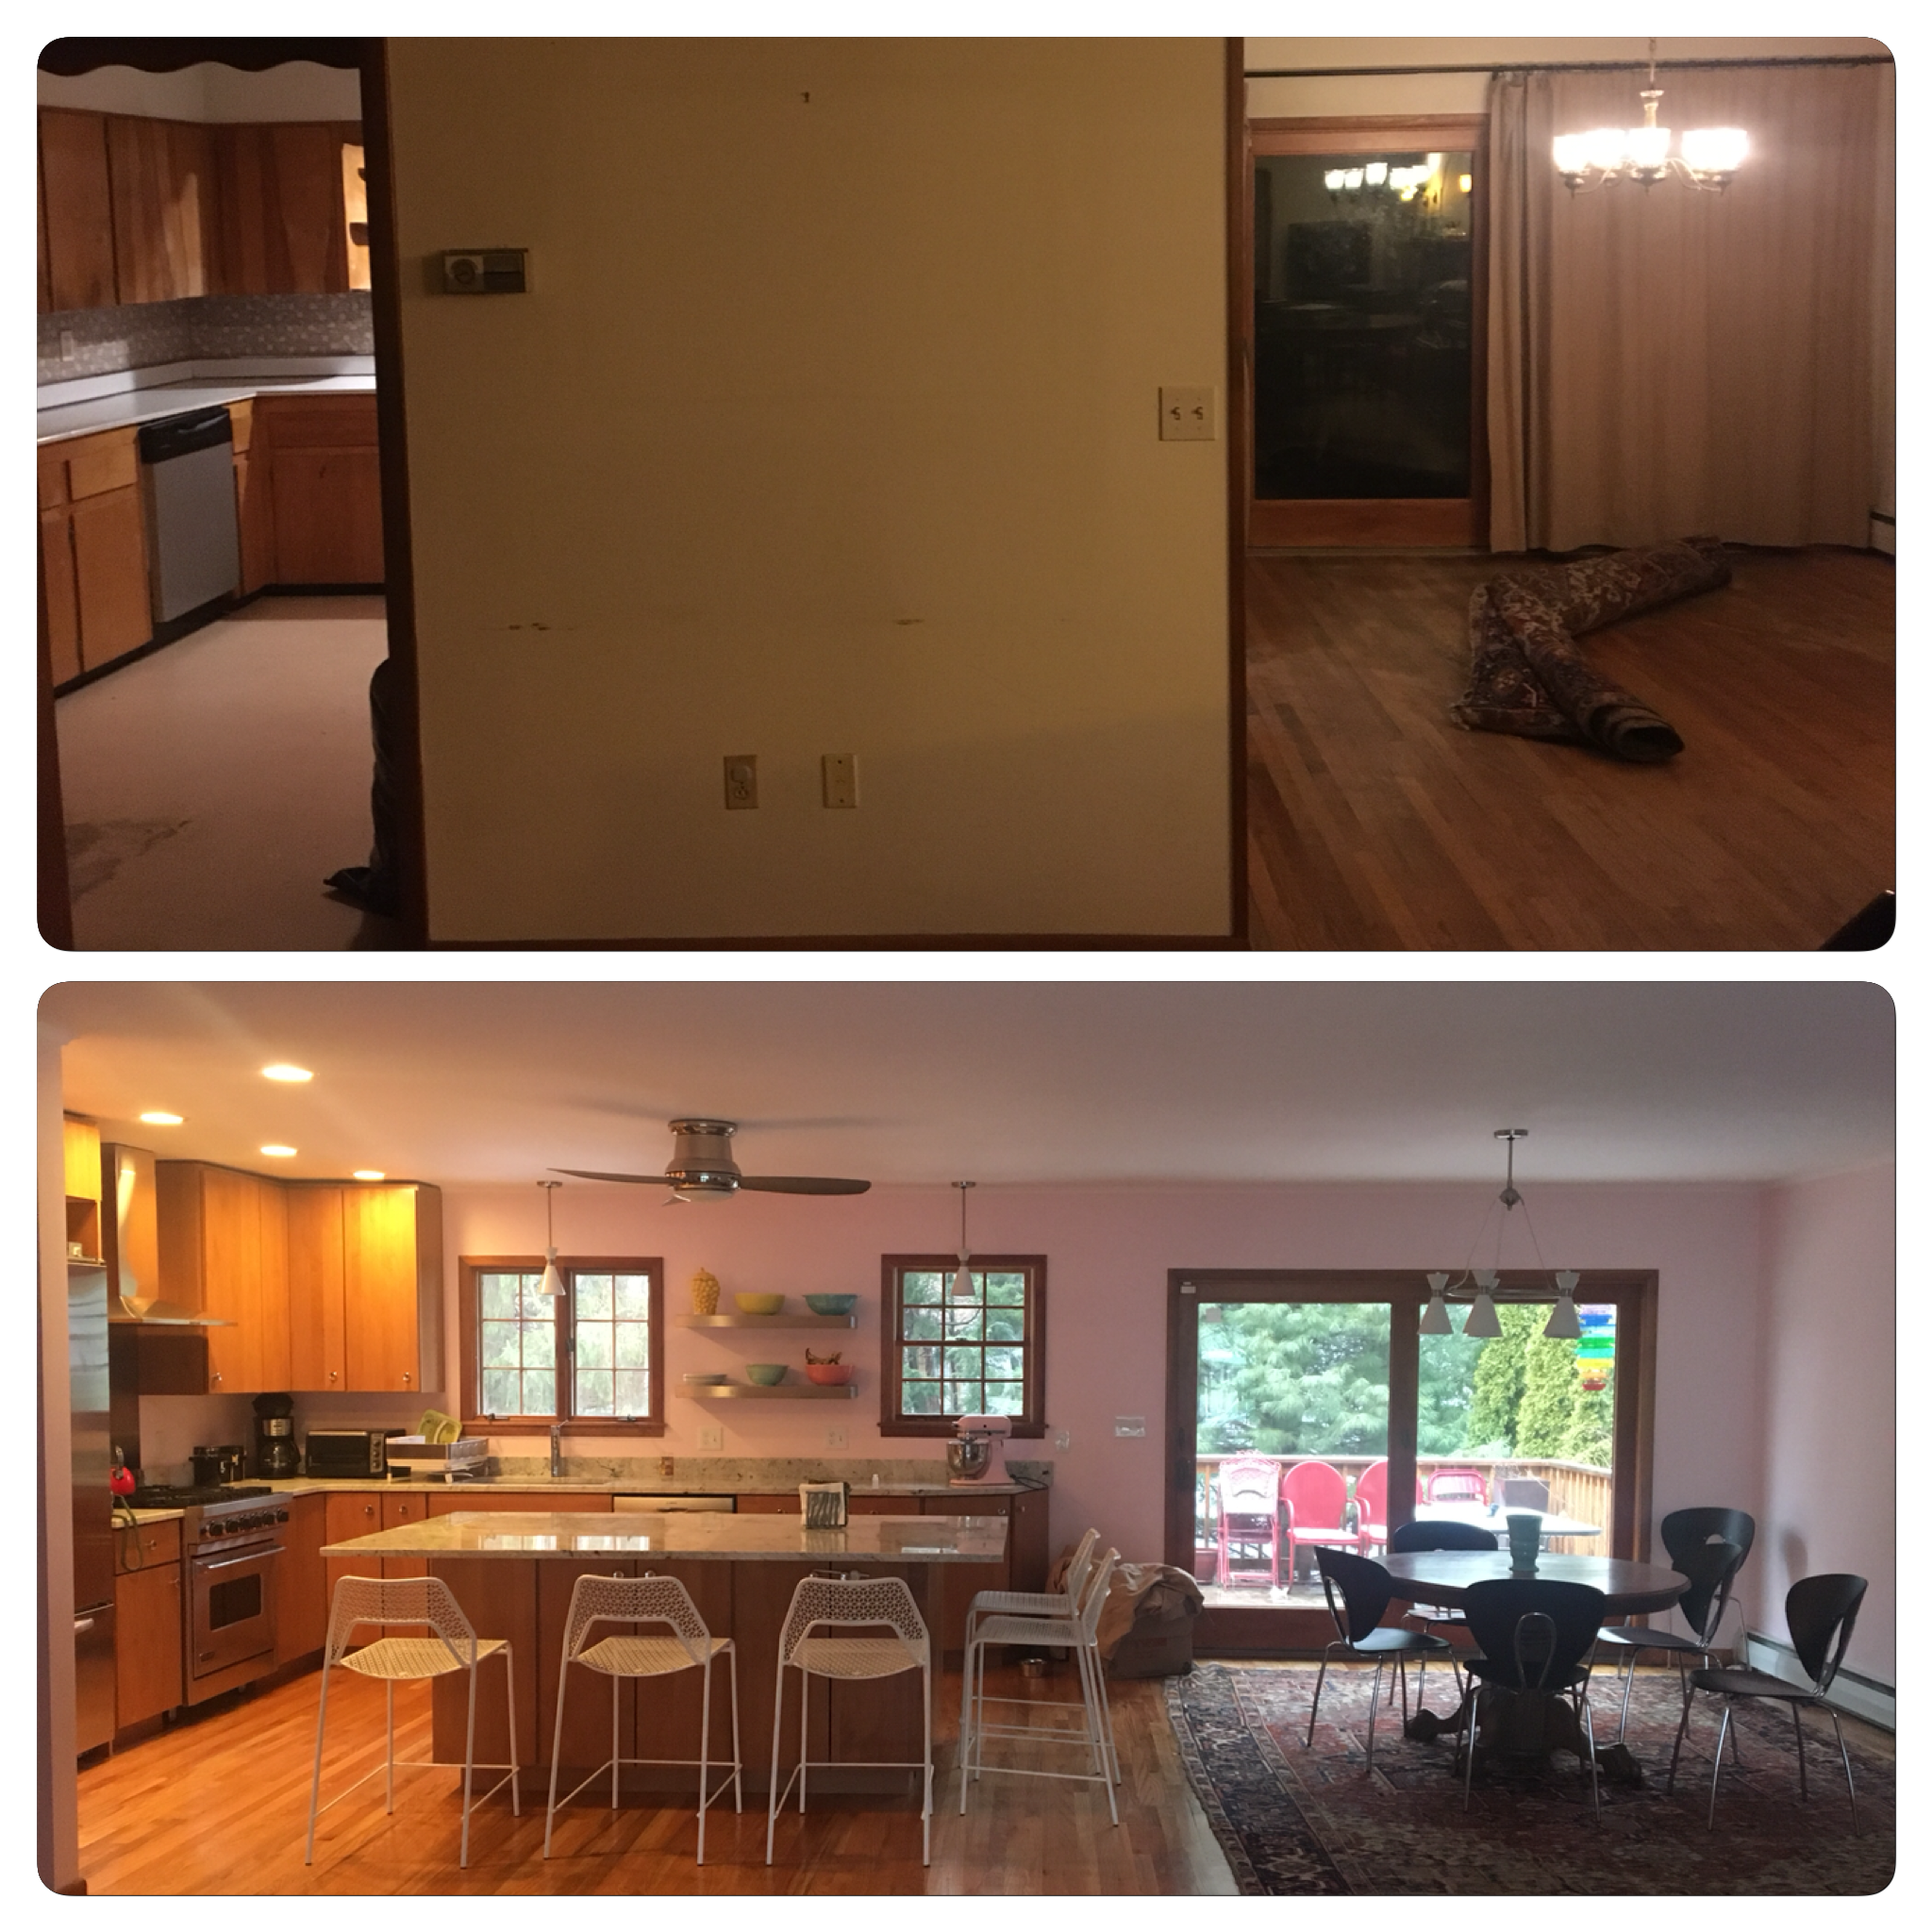 And Split Level Kitchen Remodel. With